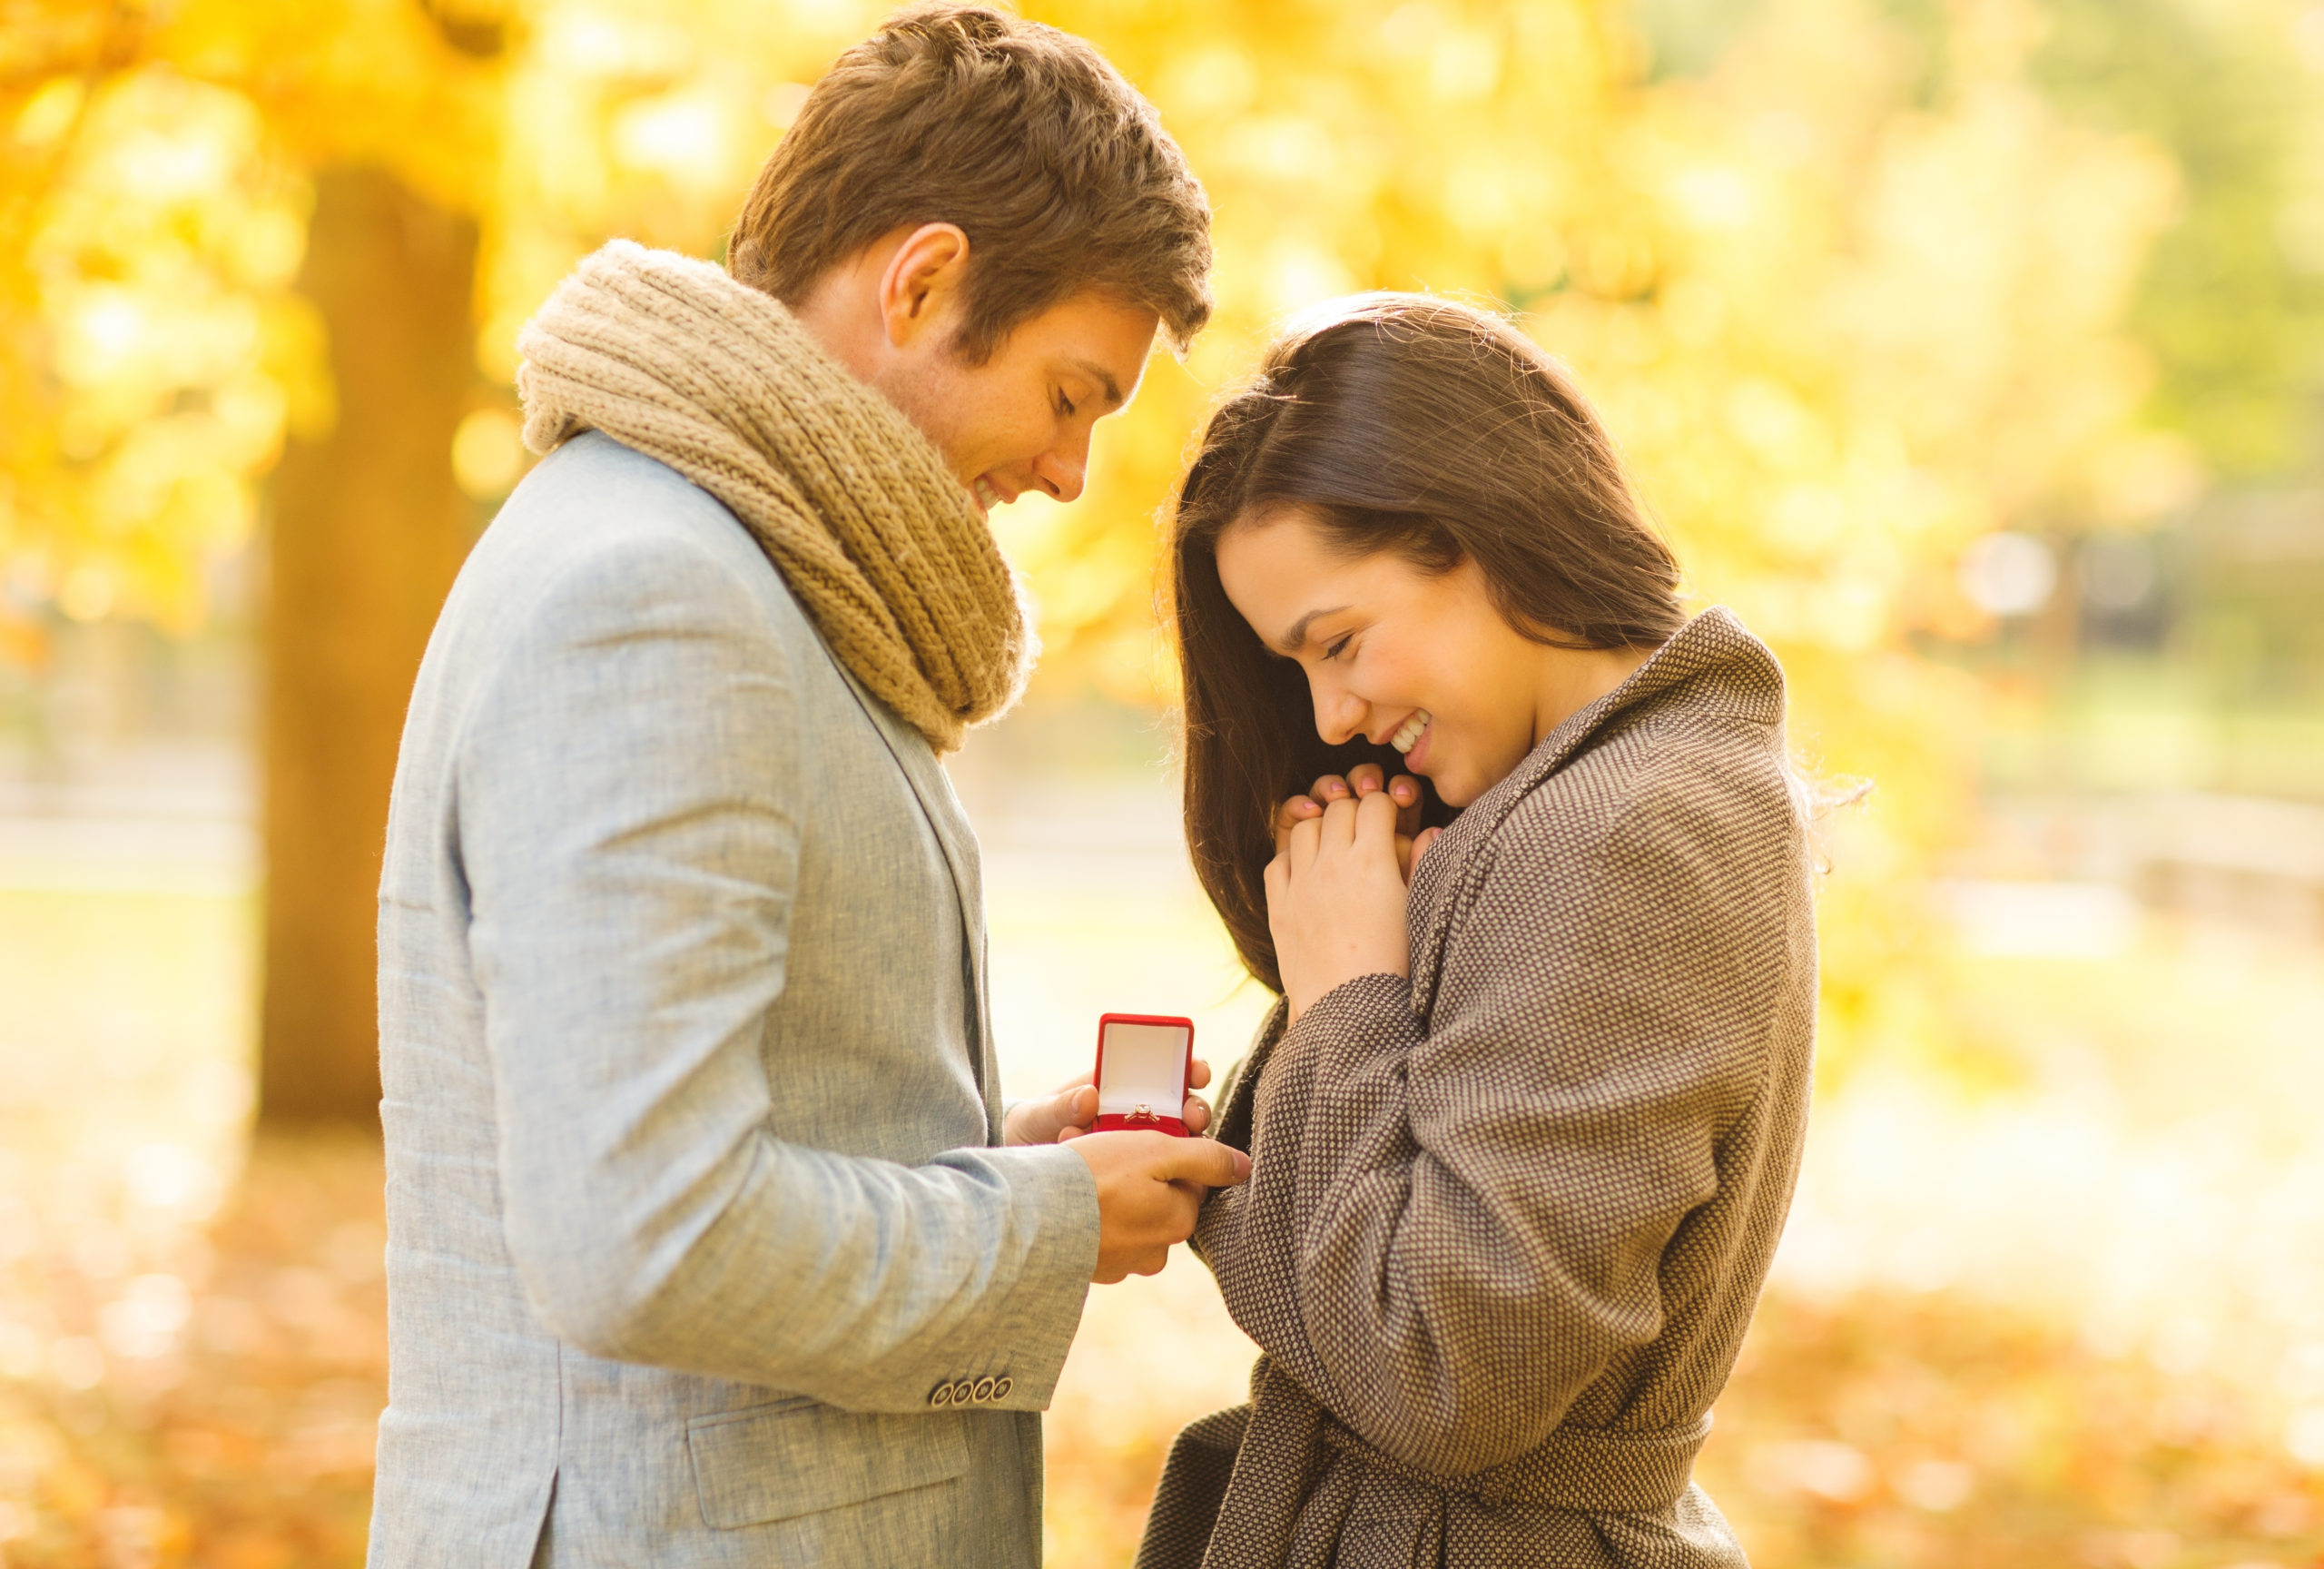 holidays-love-couple-relationship-dating-concept-158926757